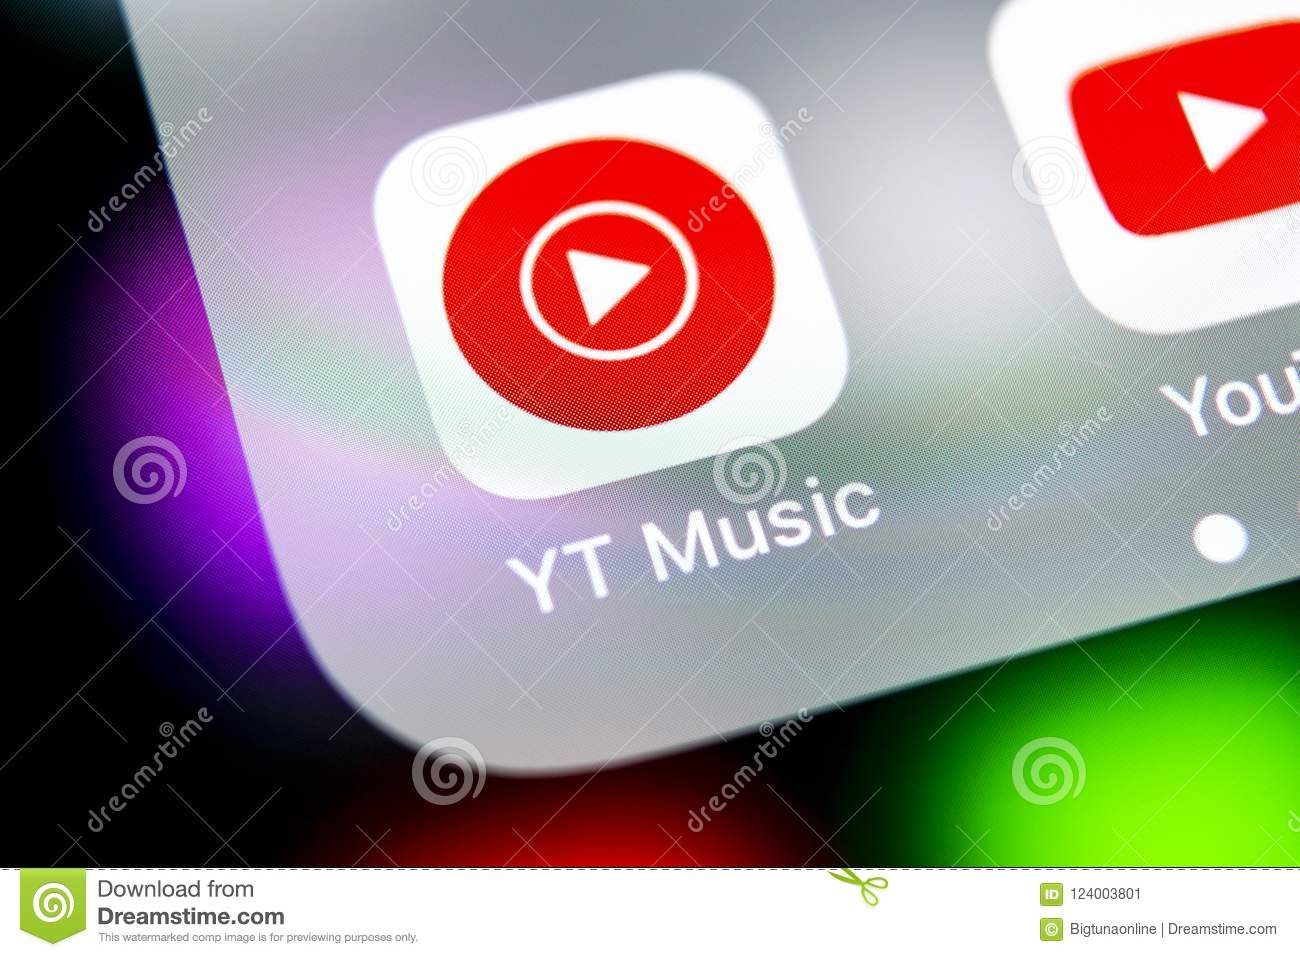 YouTube Music Application Icon On Apple IPhone X Smartphone Screen